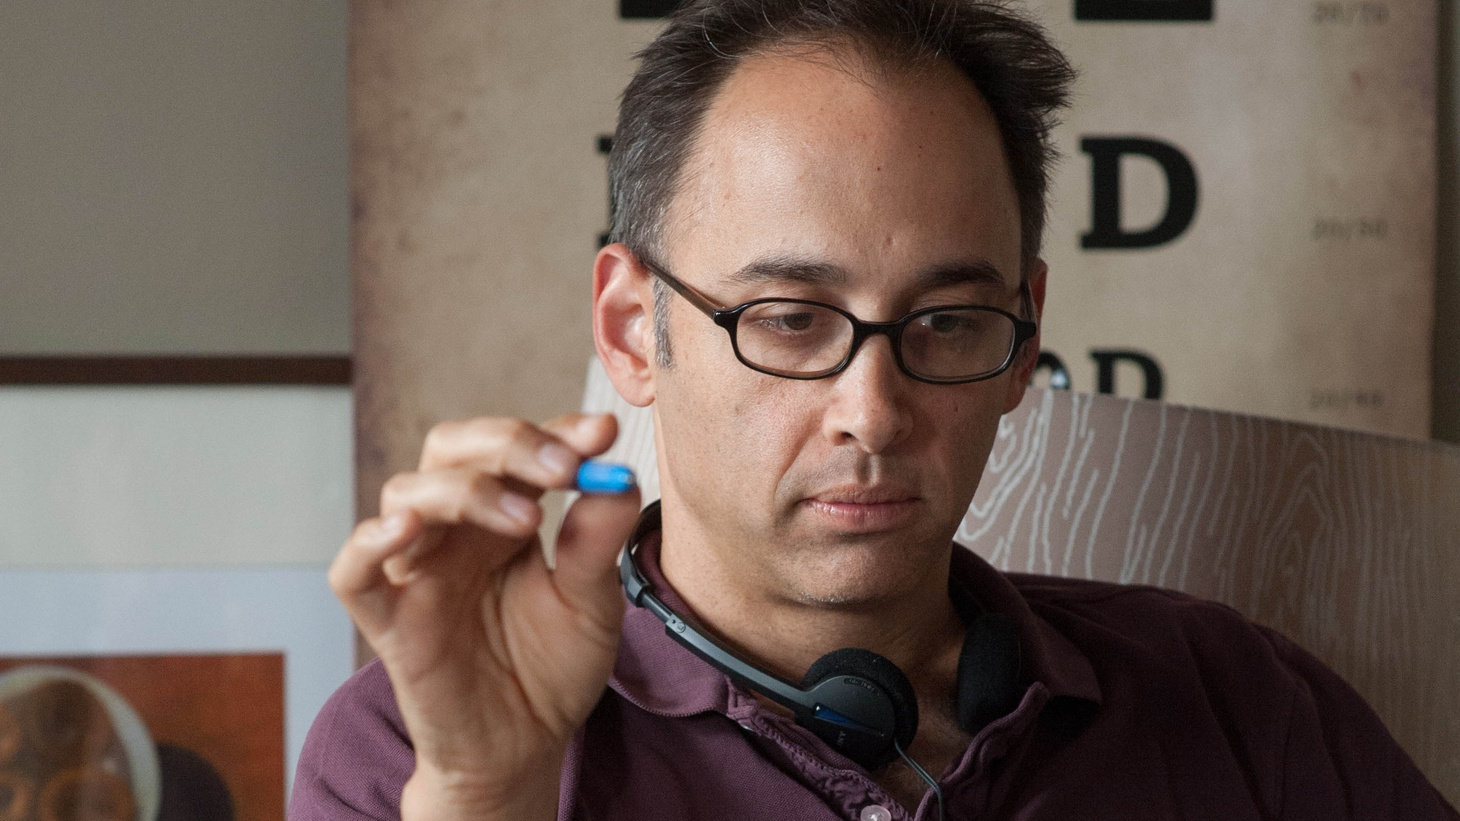 Don't call him a cynic. David Wain may totally tear apart the romantic comedy genre in his new film They Came Together, but he does it lovingly.